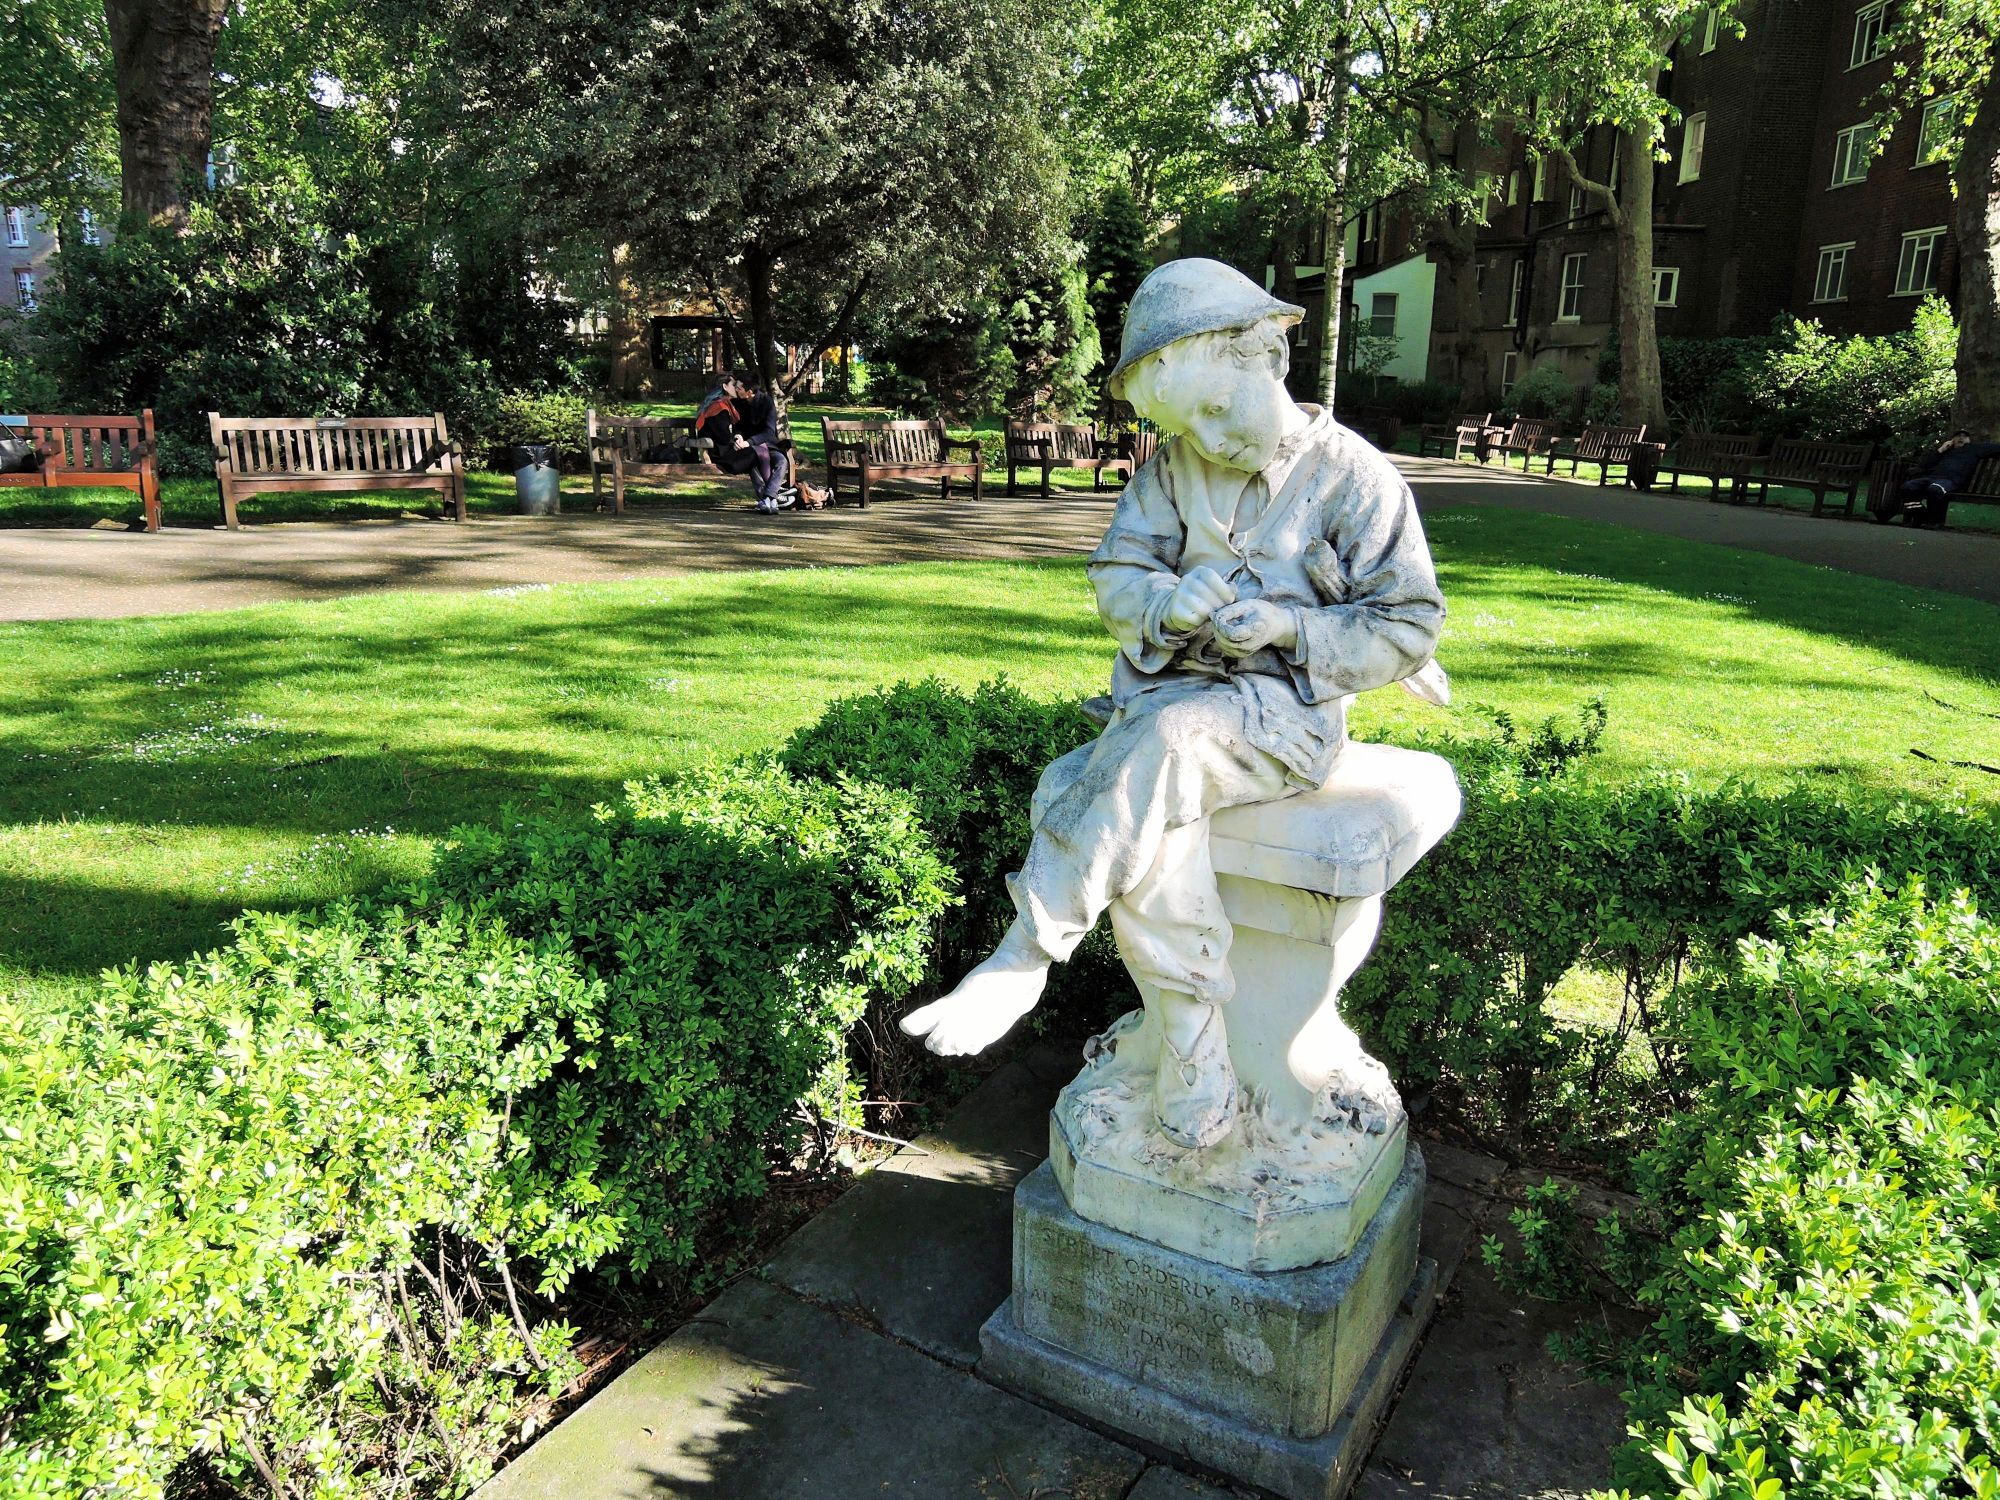 Photo of Paddington Street Gardens. In the foreground is a statue of a small boy in ragged clothing. In the background is a lawn, paths, benches, shrubs and trees.